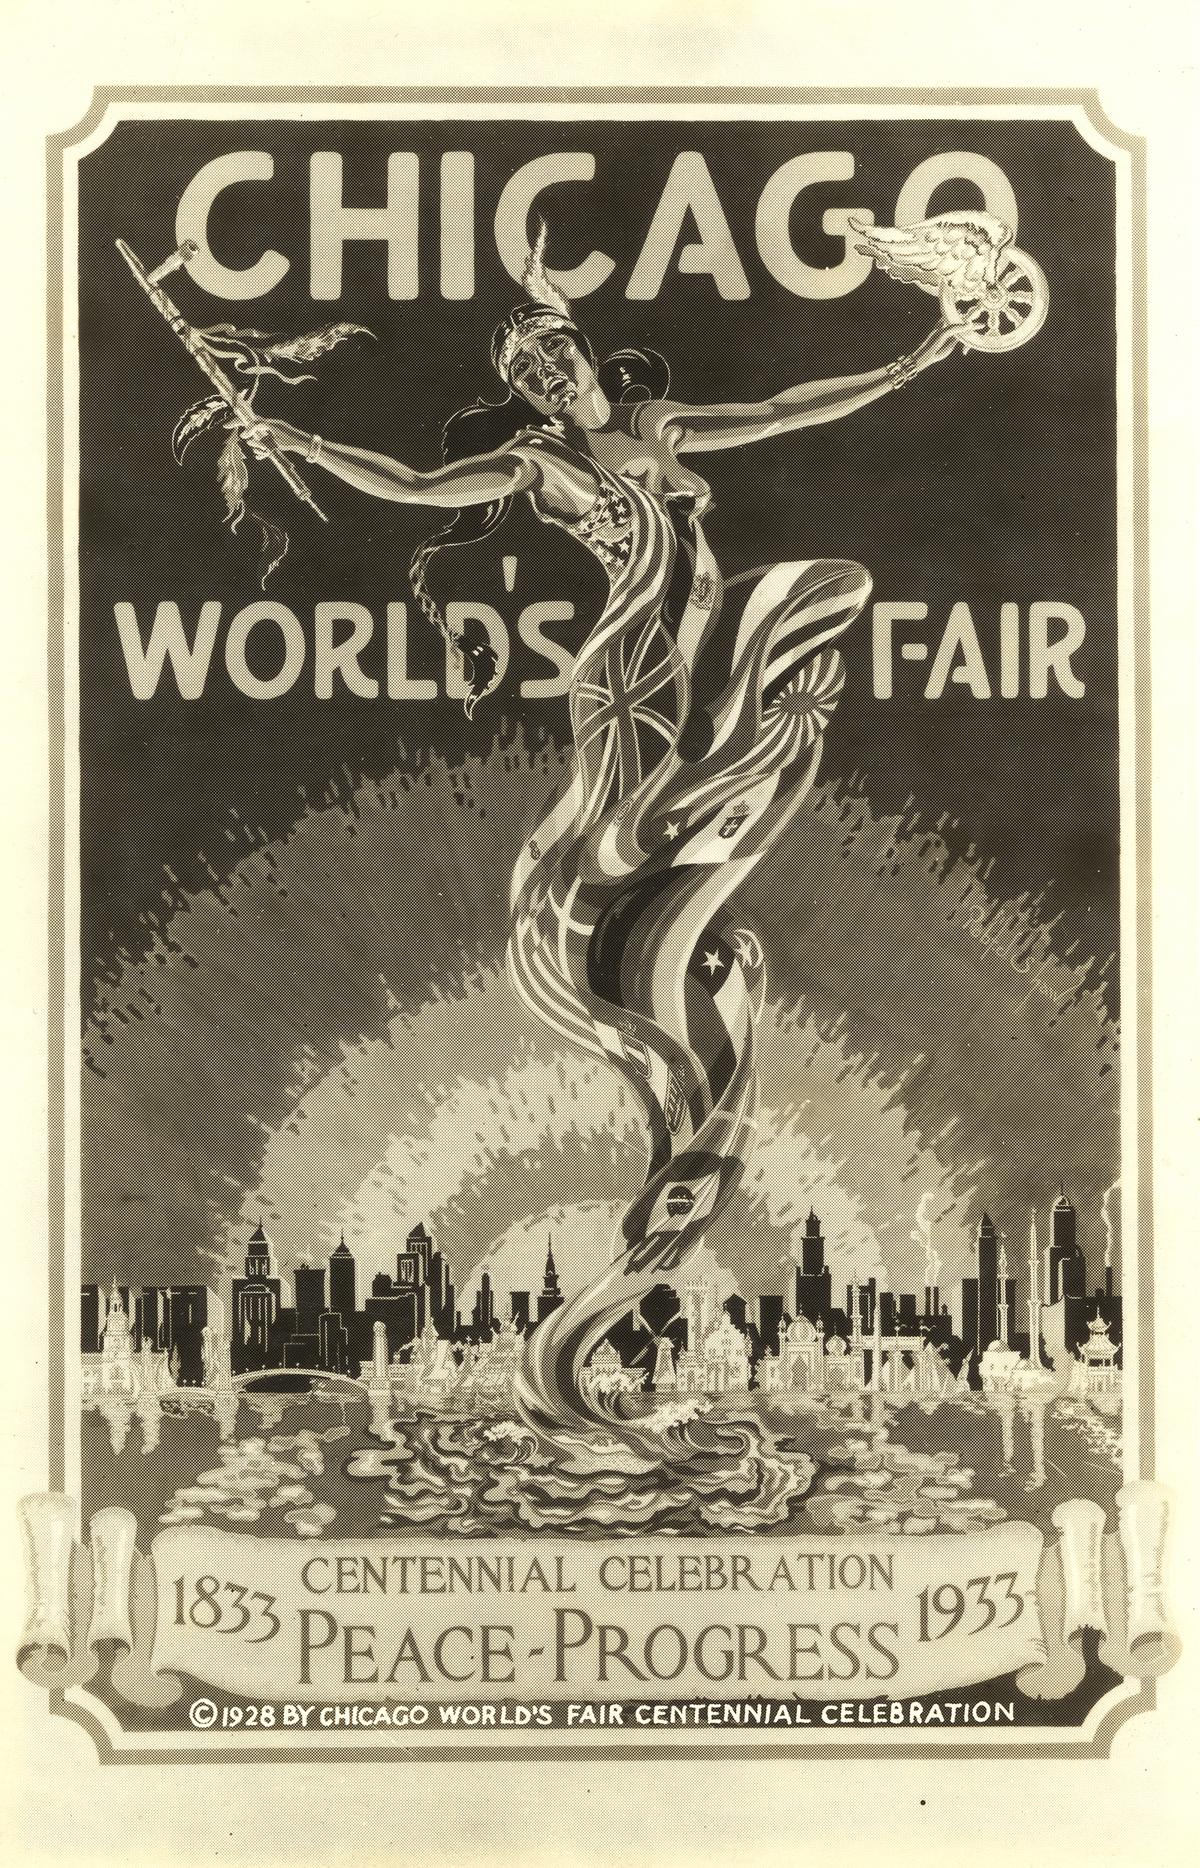 A 1933 promotional poster for A Century of Progress International Exposition.